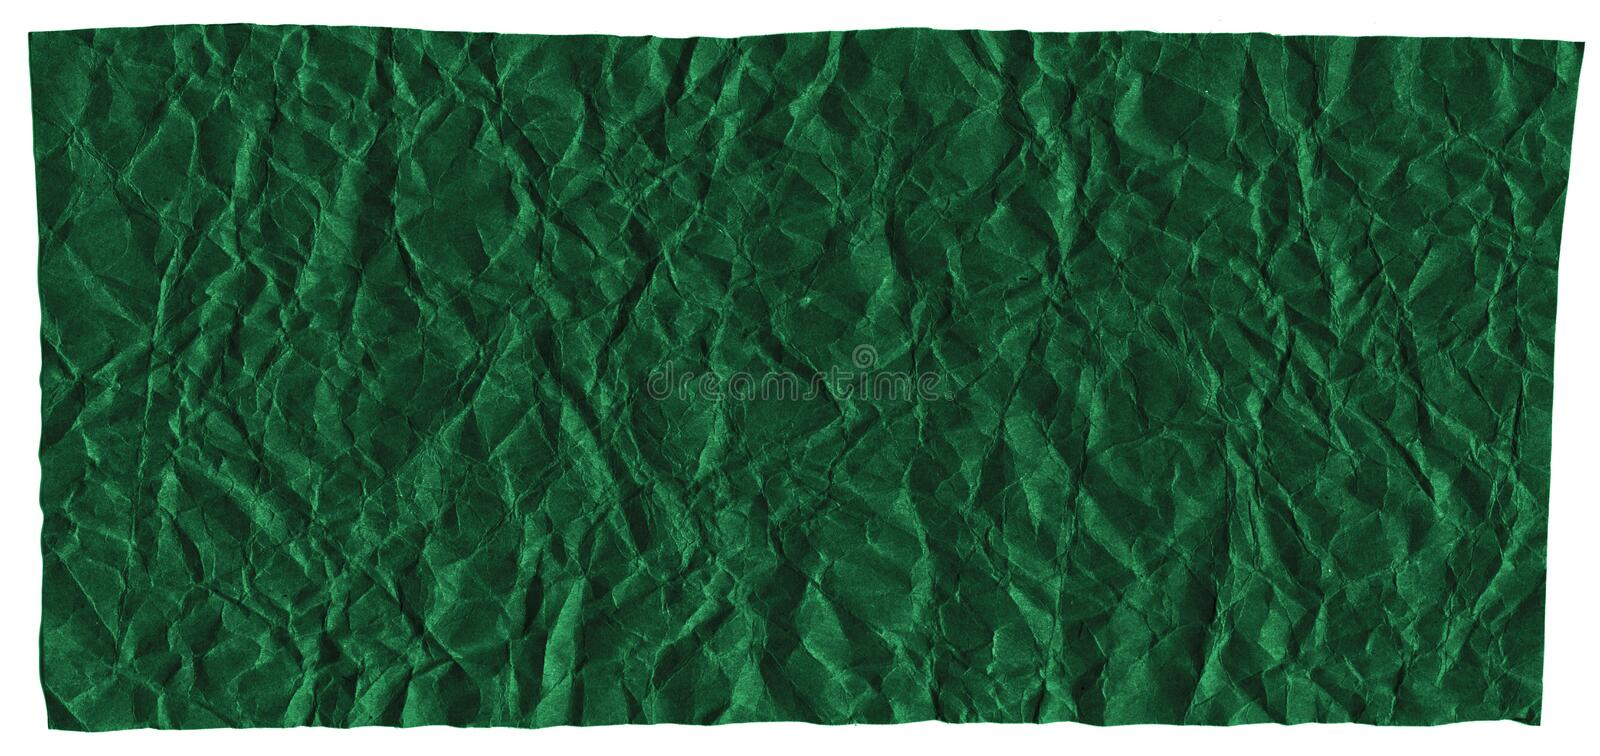 Ready frame for design, texture of crumpled craft paper, dark green abstract background. For clearance. Template stock image